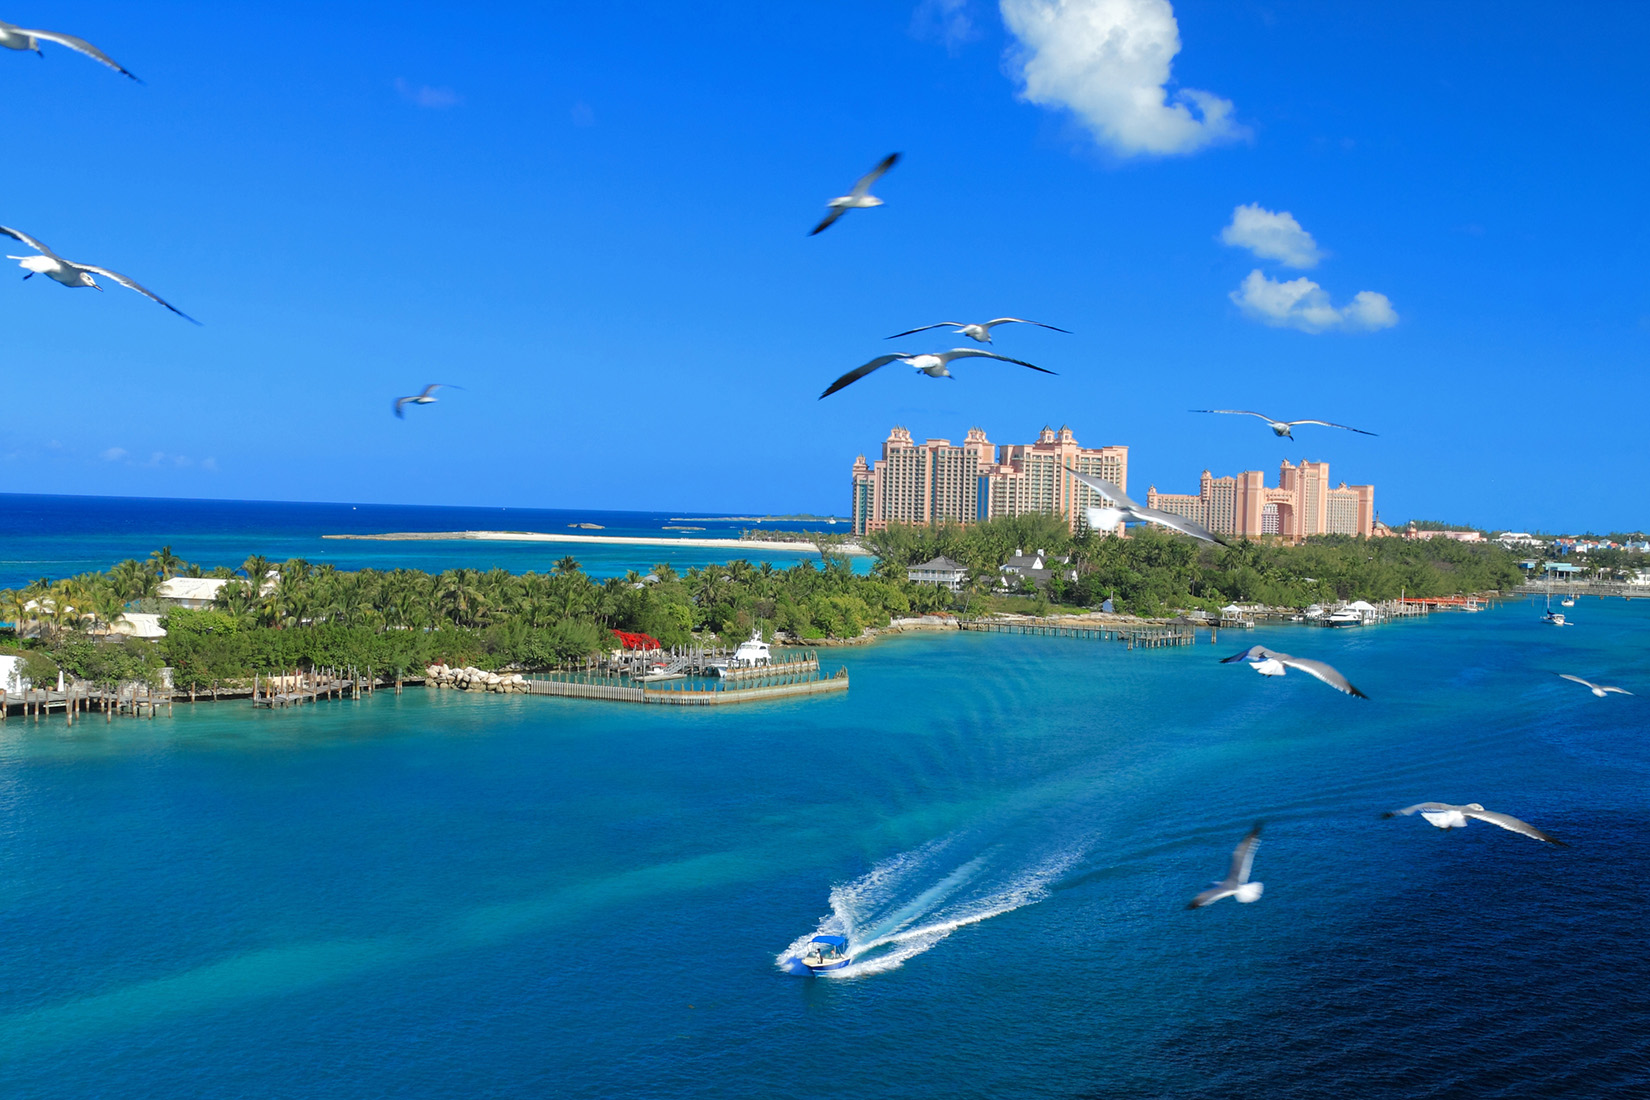 Bahamas wants cruises to return to Nassau, not just private islands